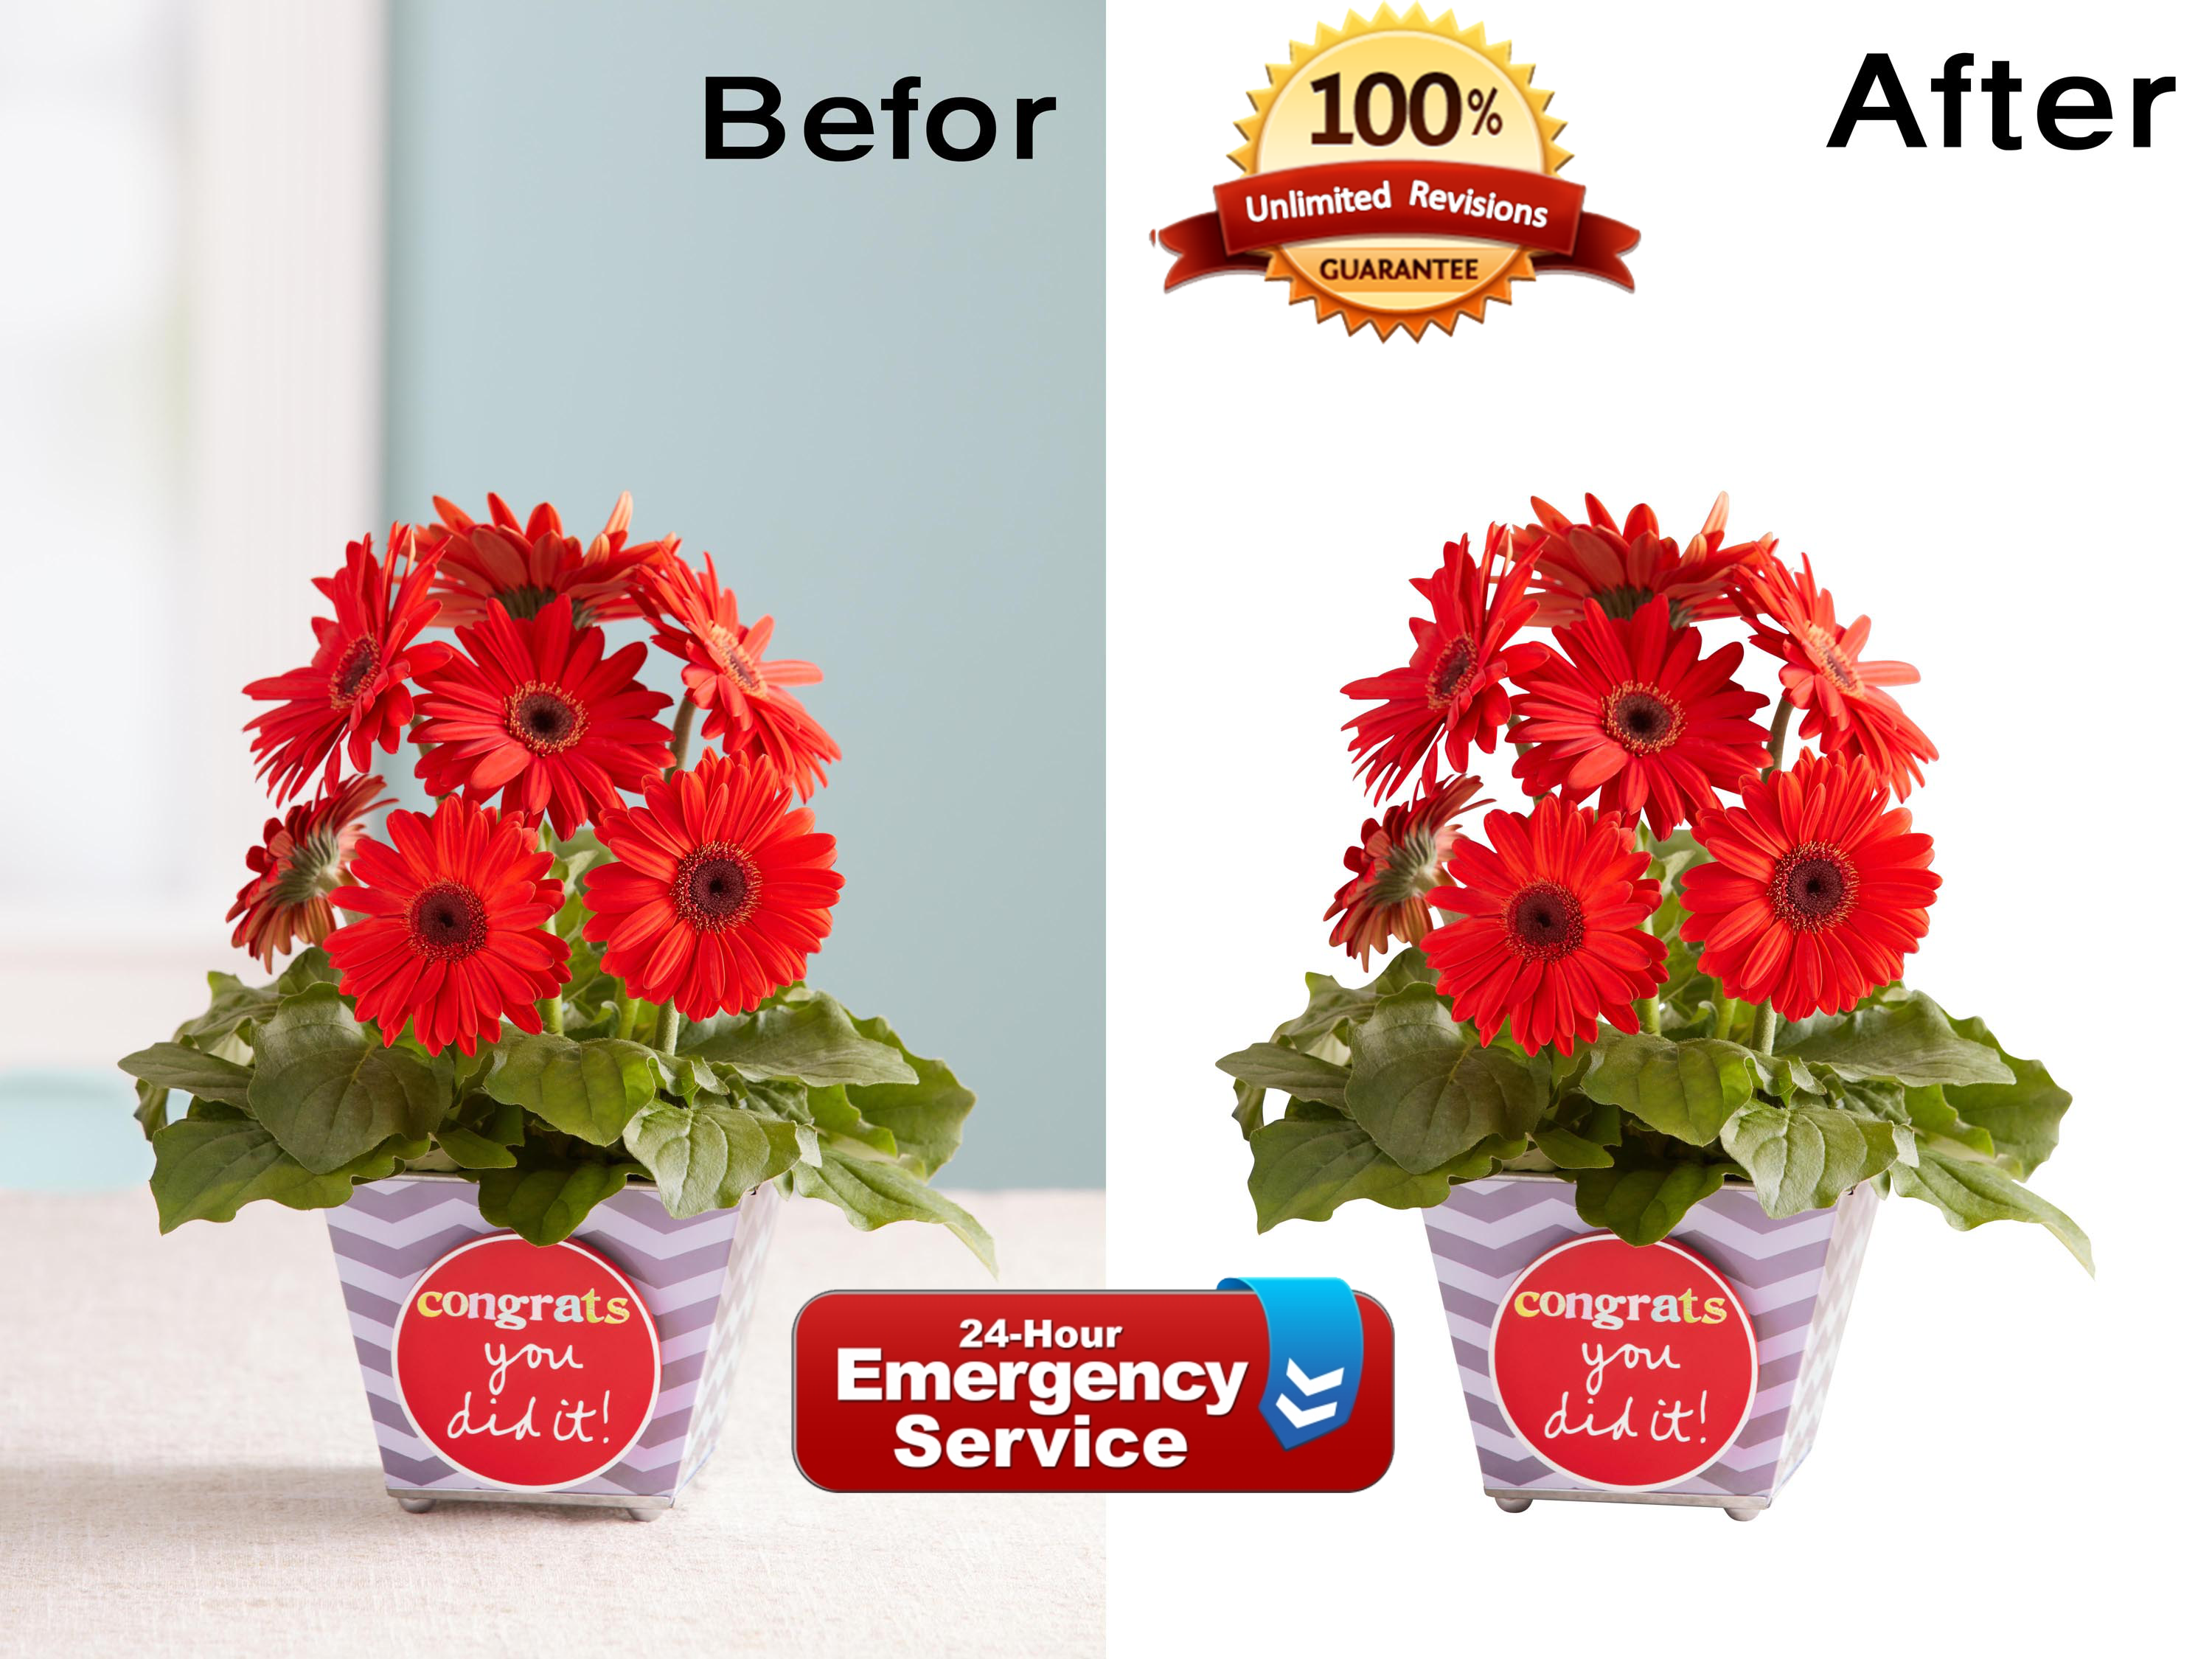 Product background Remove & Retouching services